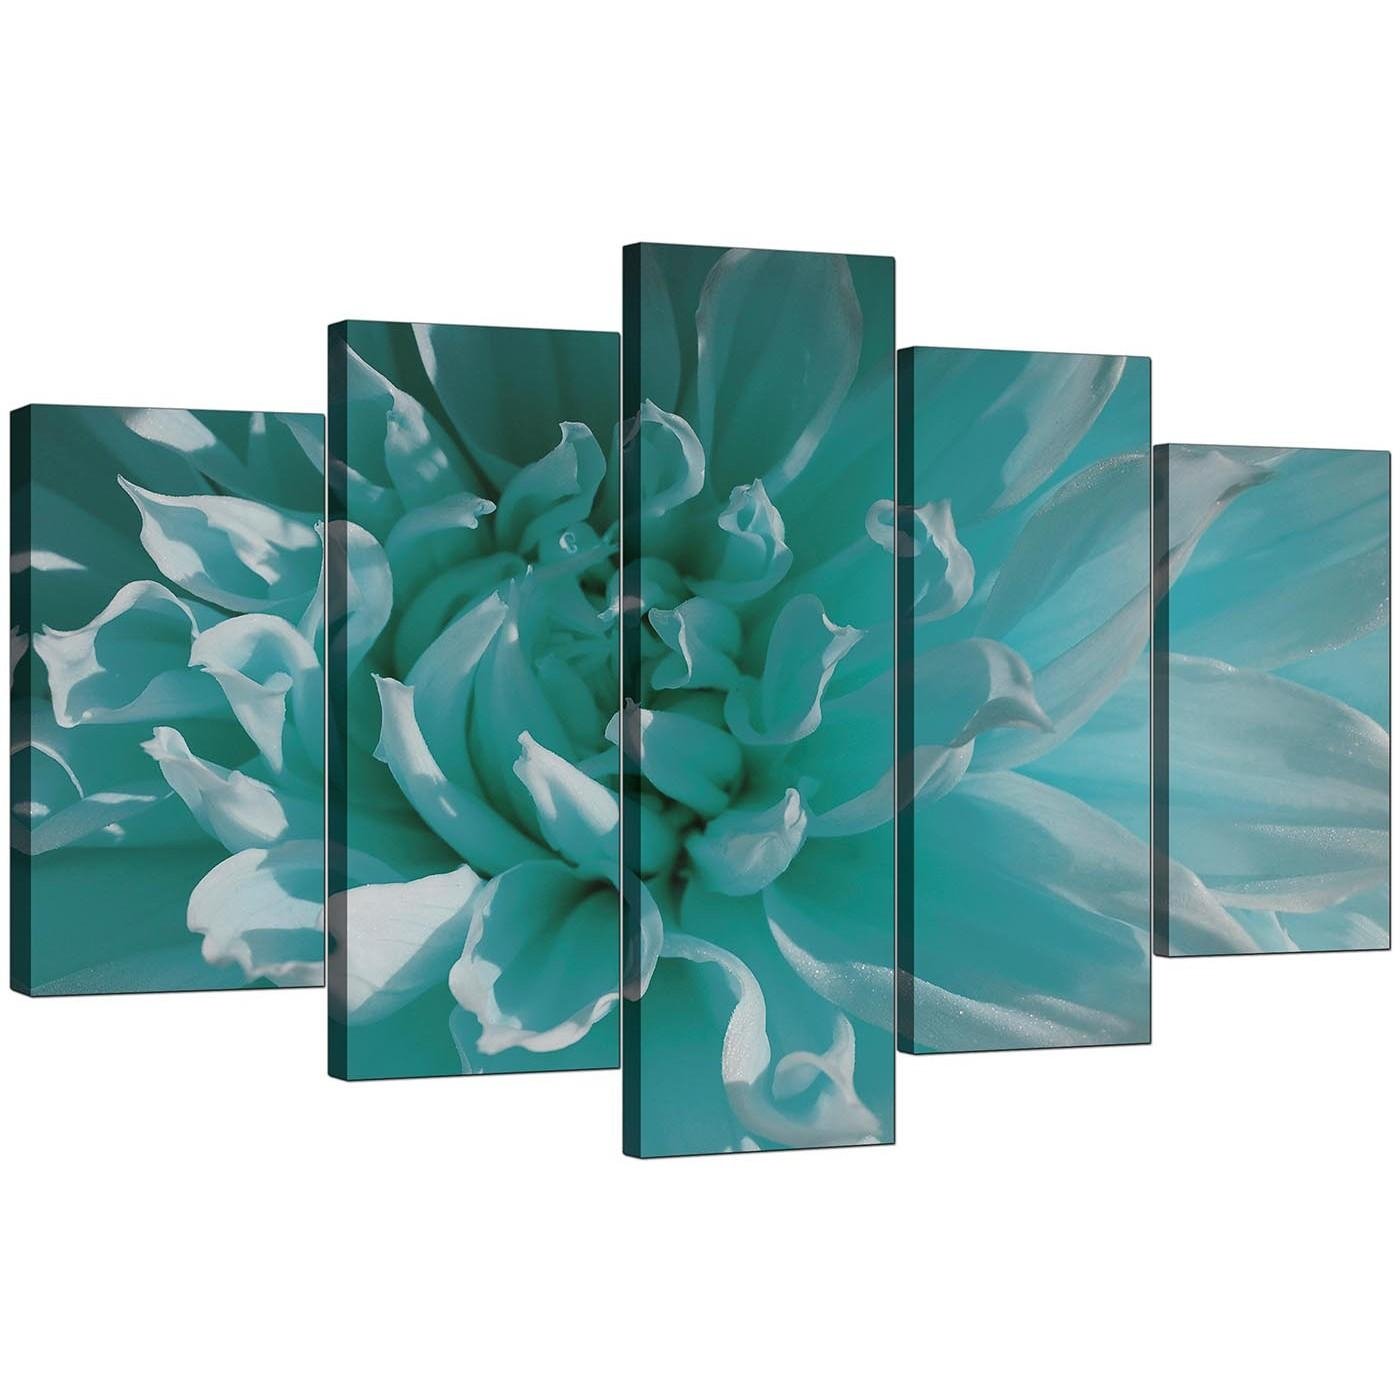 Extra Large Flower Canvas Wall Art 5 Piece In Teal Inside Teal Wall Art Uk (Image 6 of 20)